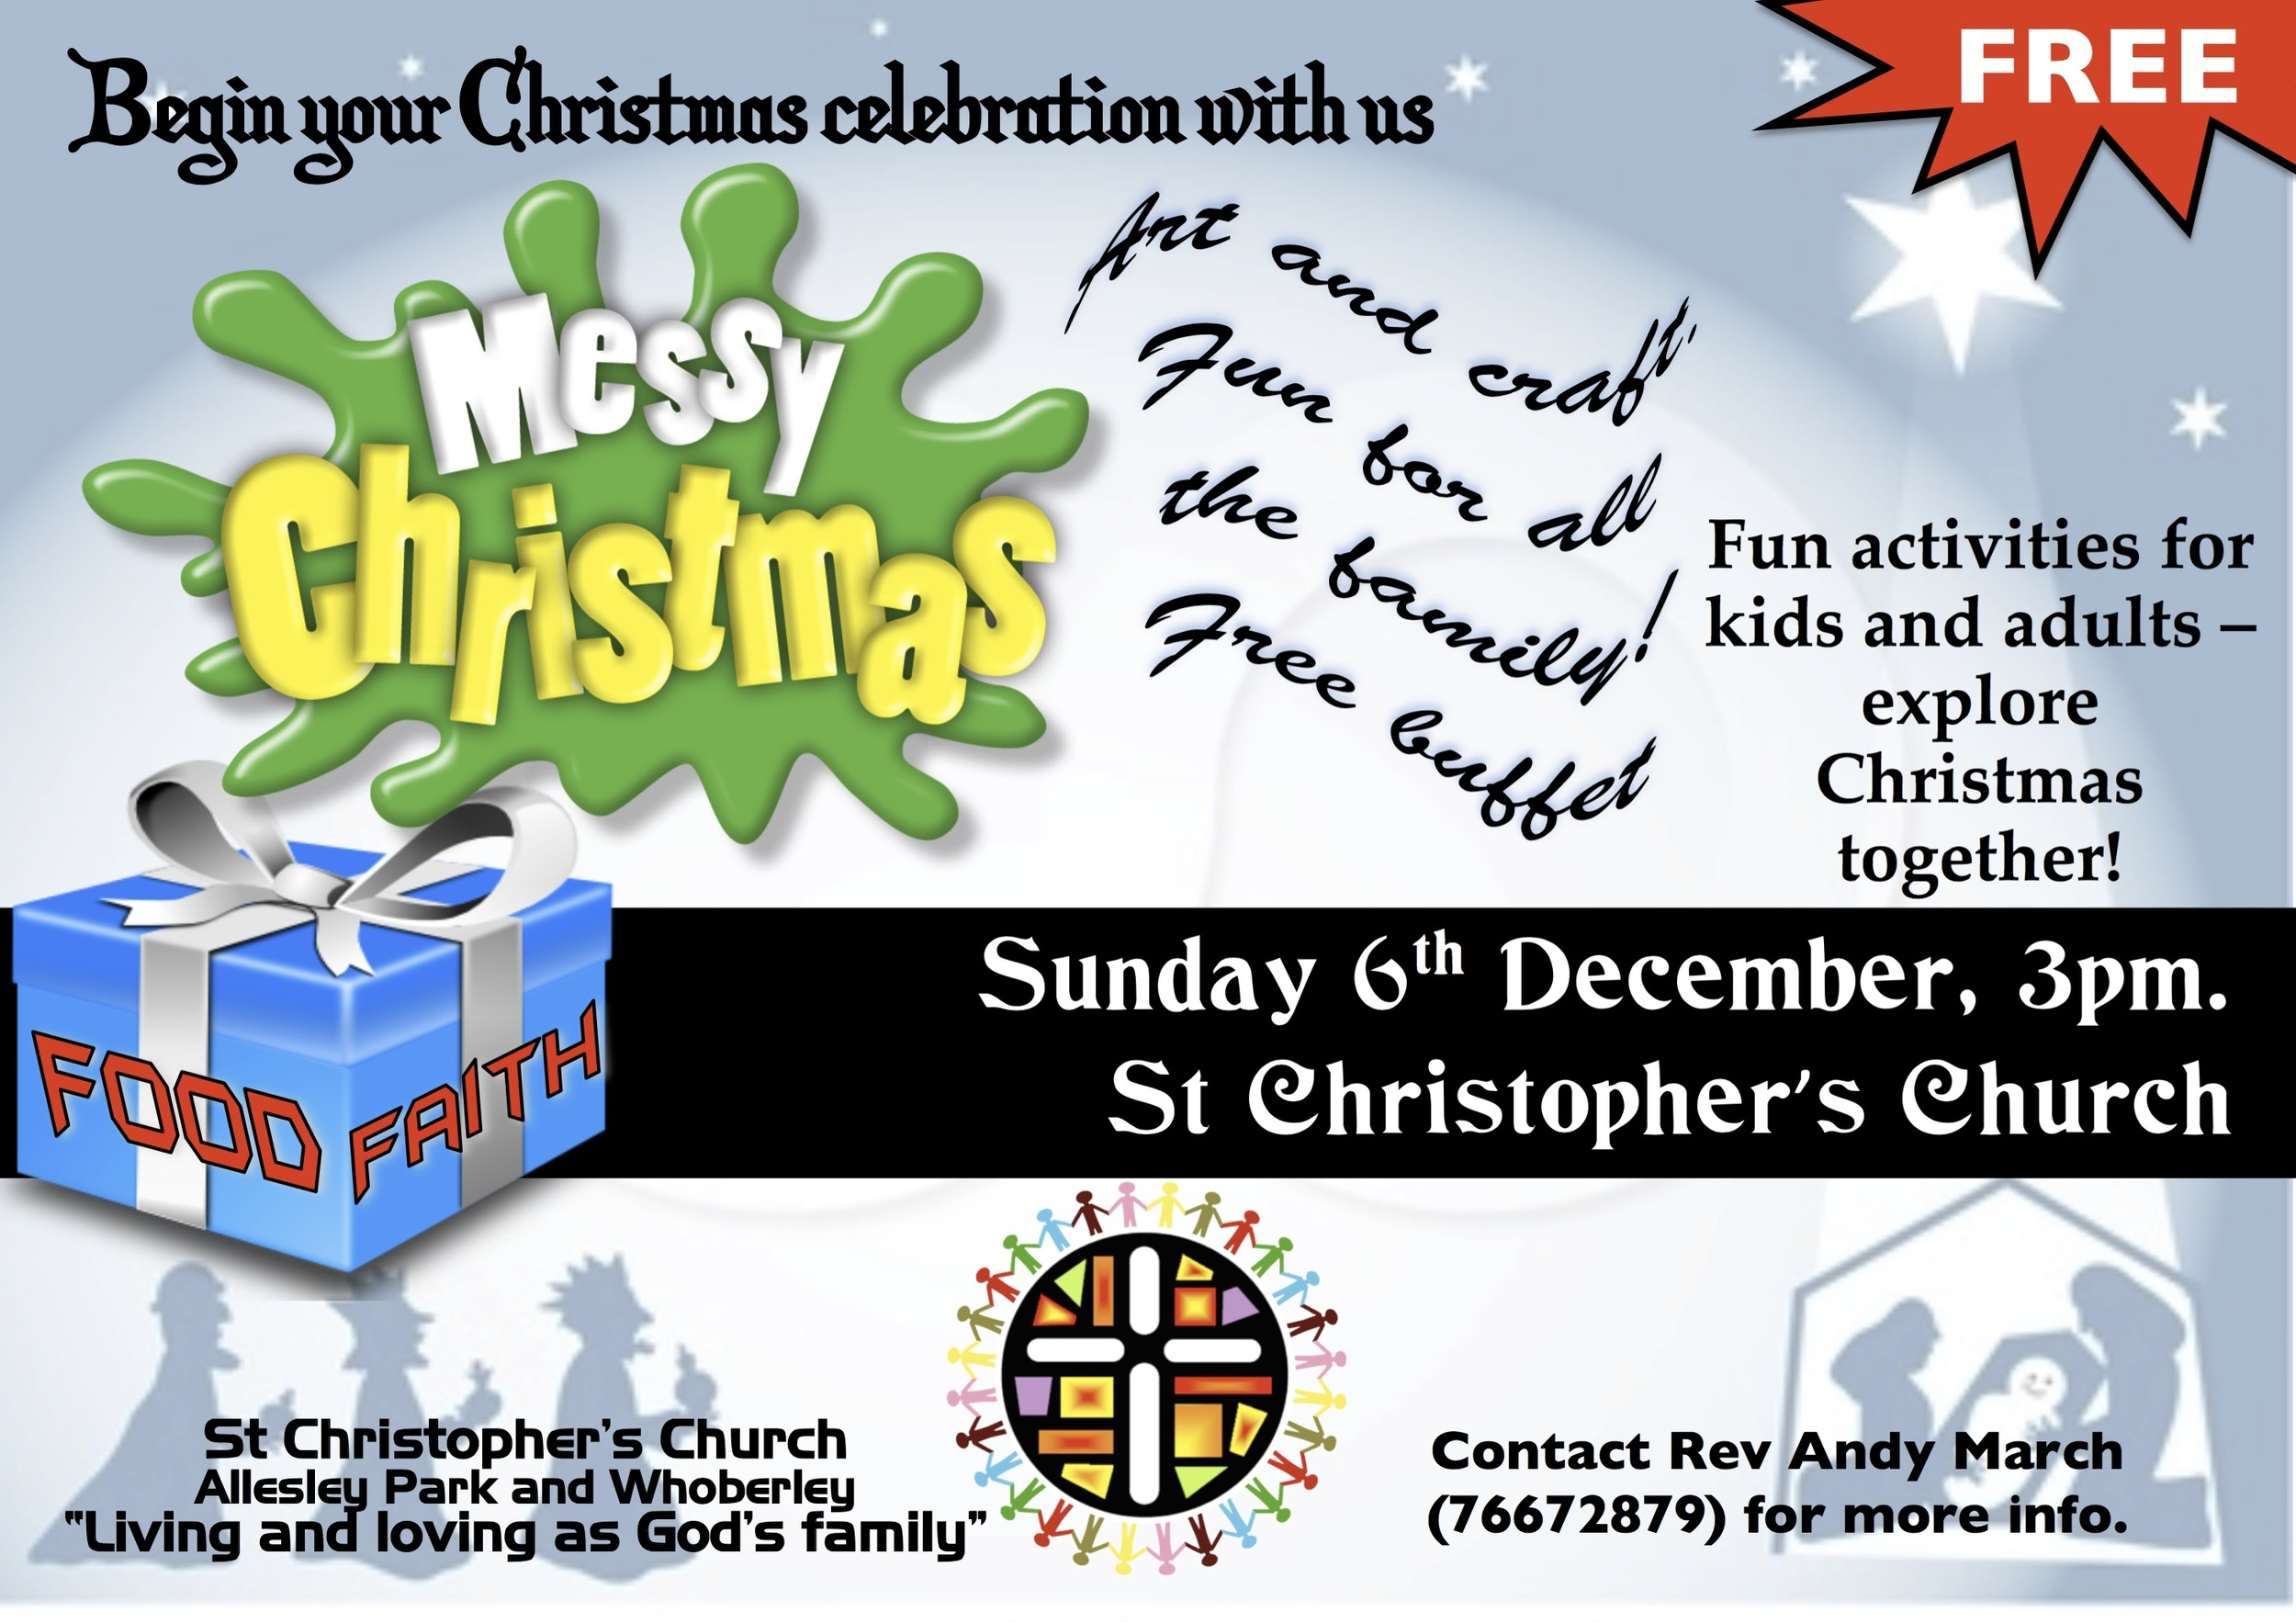 messy church christmas flyer 2015.jpg